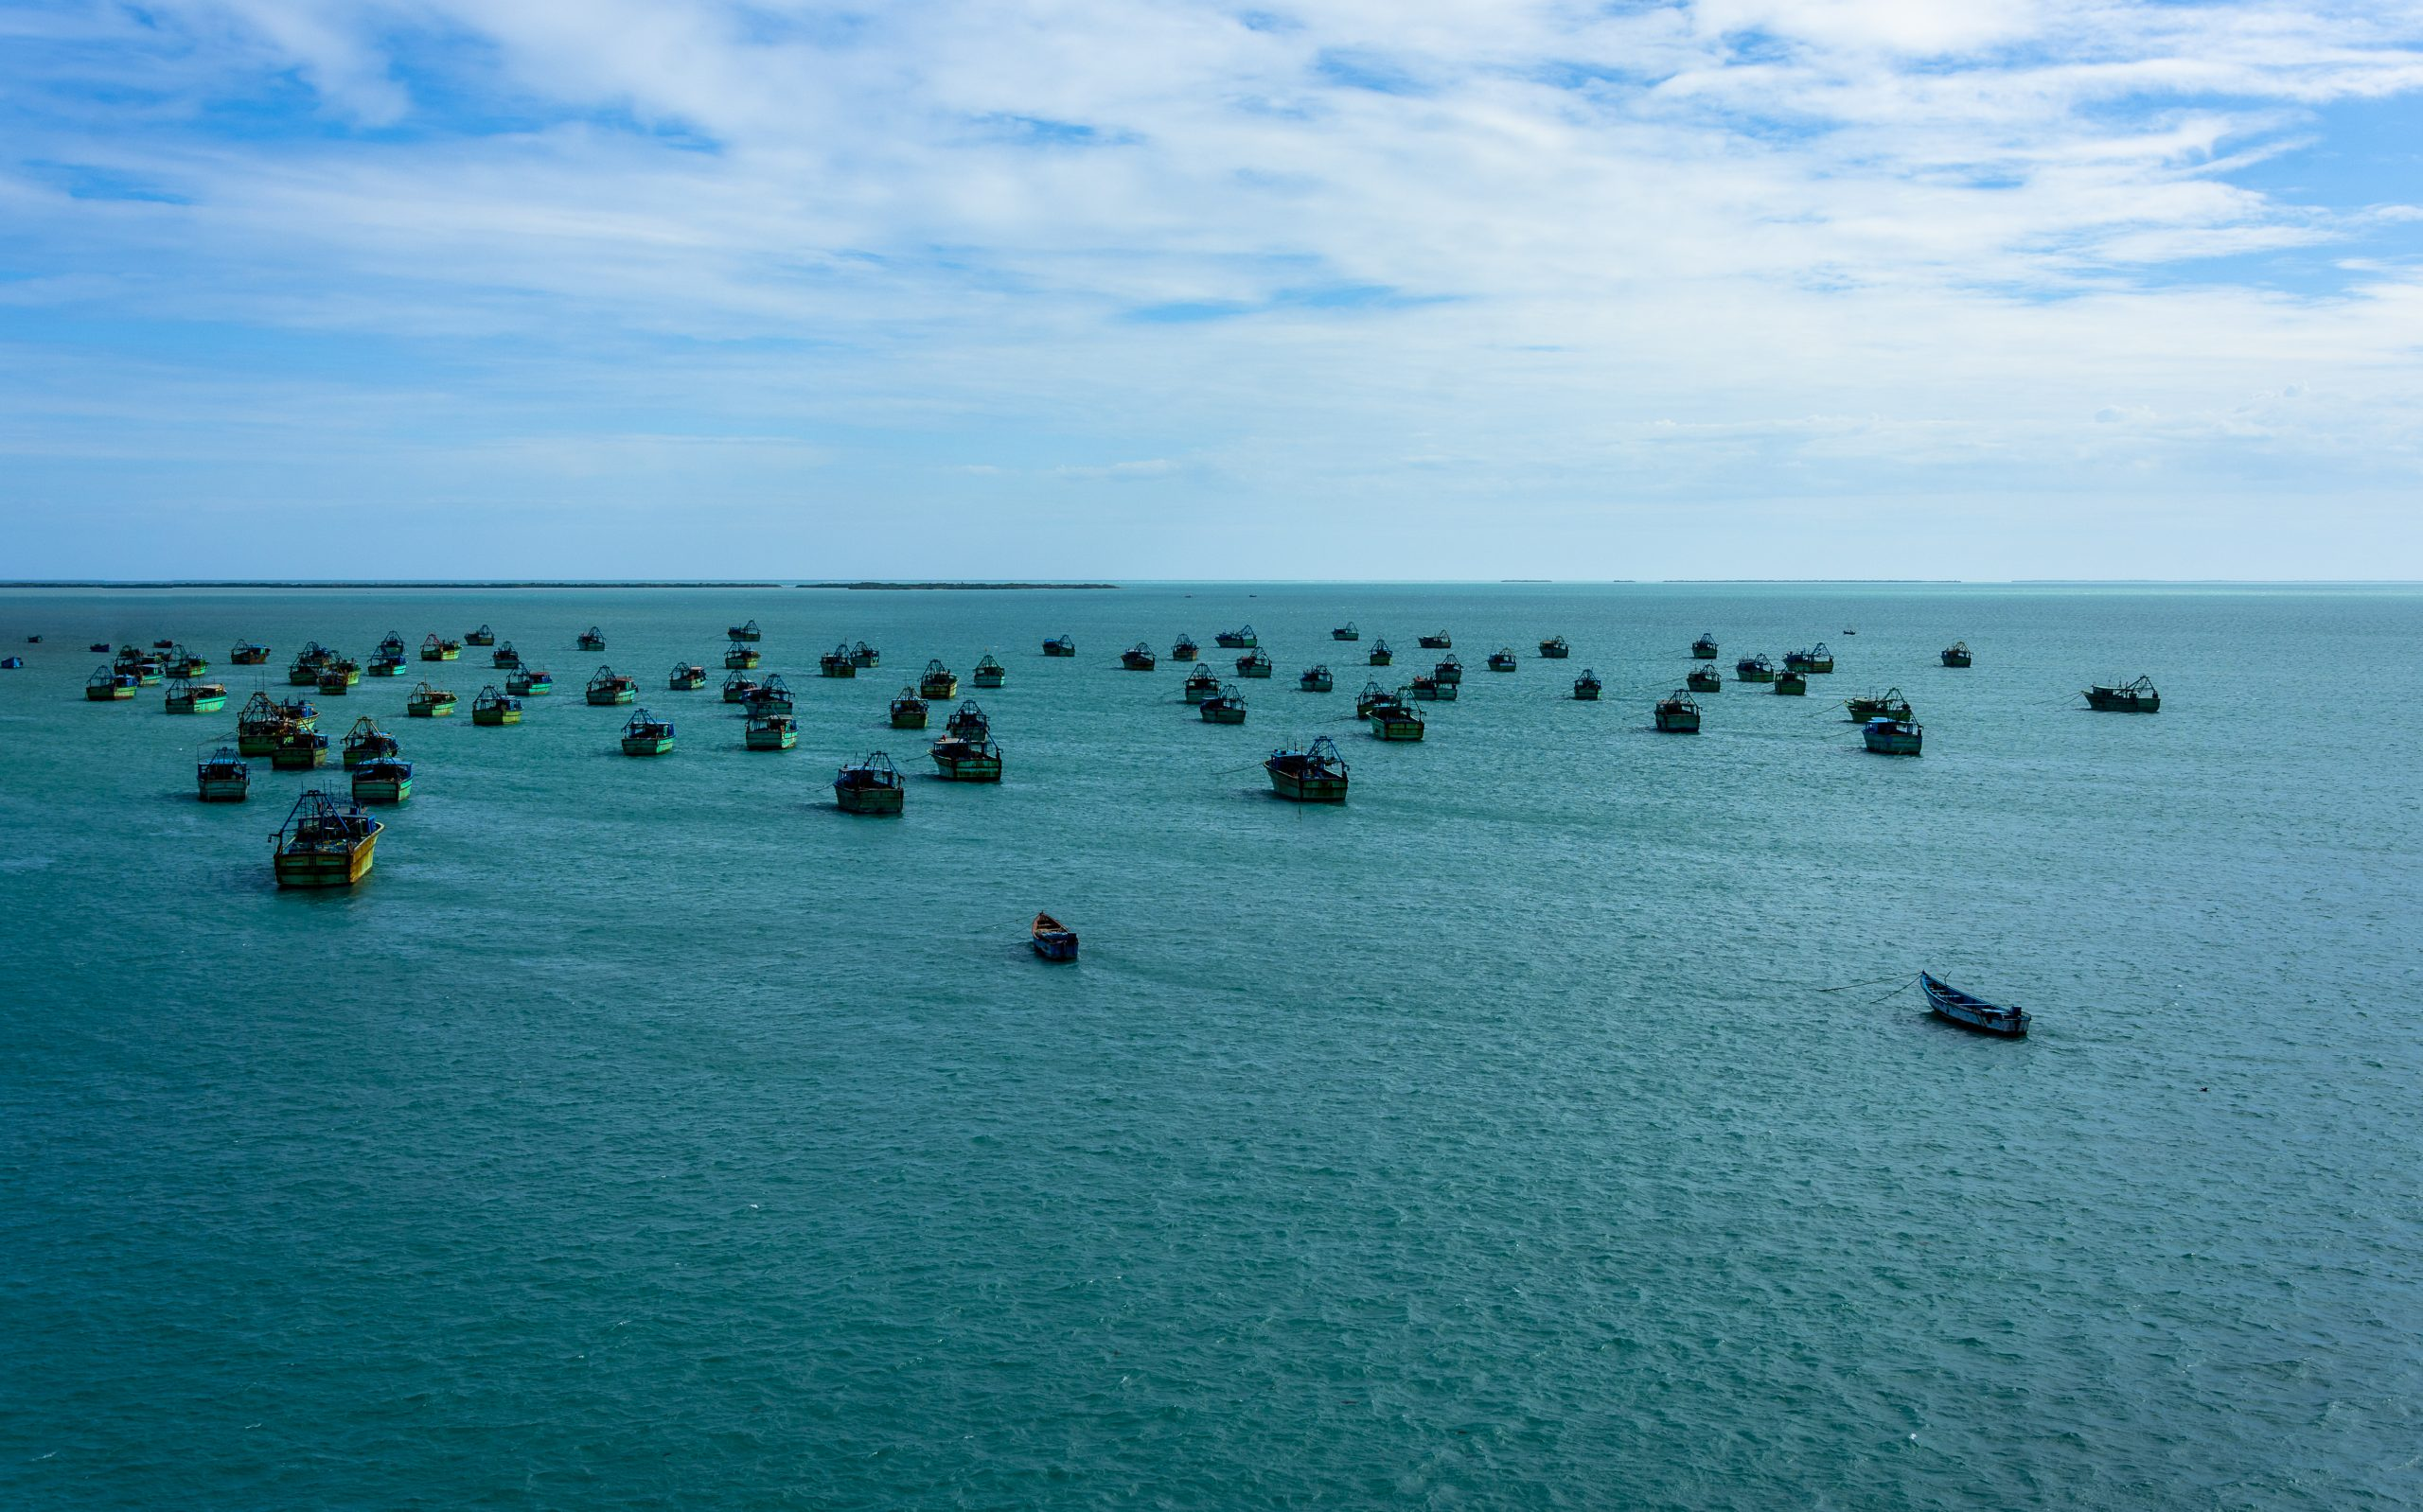 Fishing boats in a sea